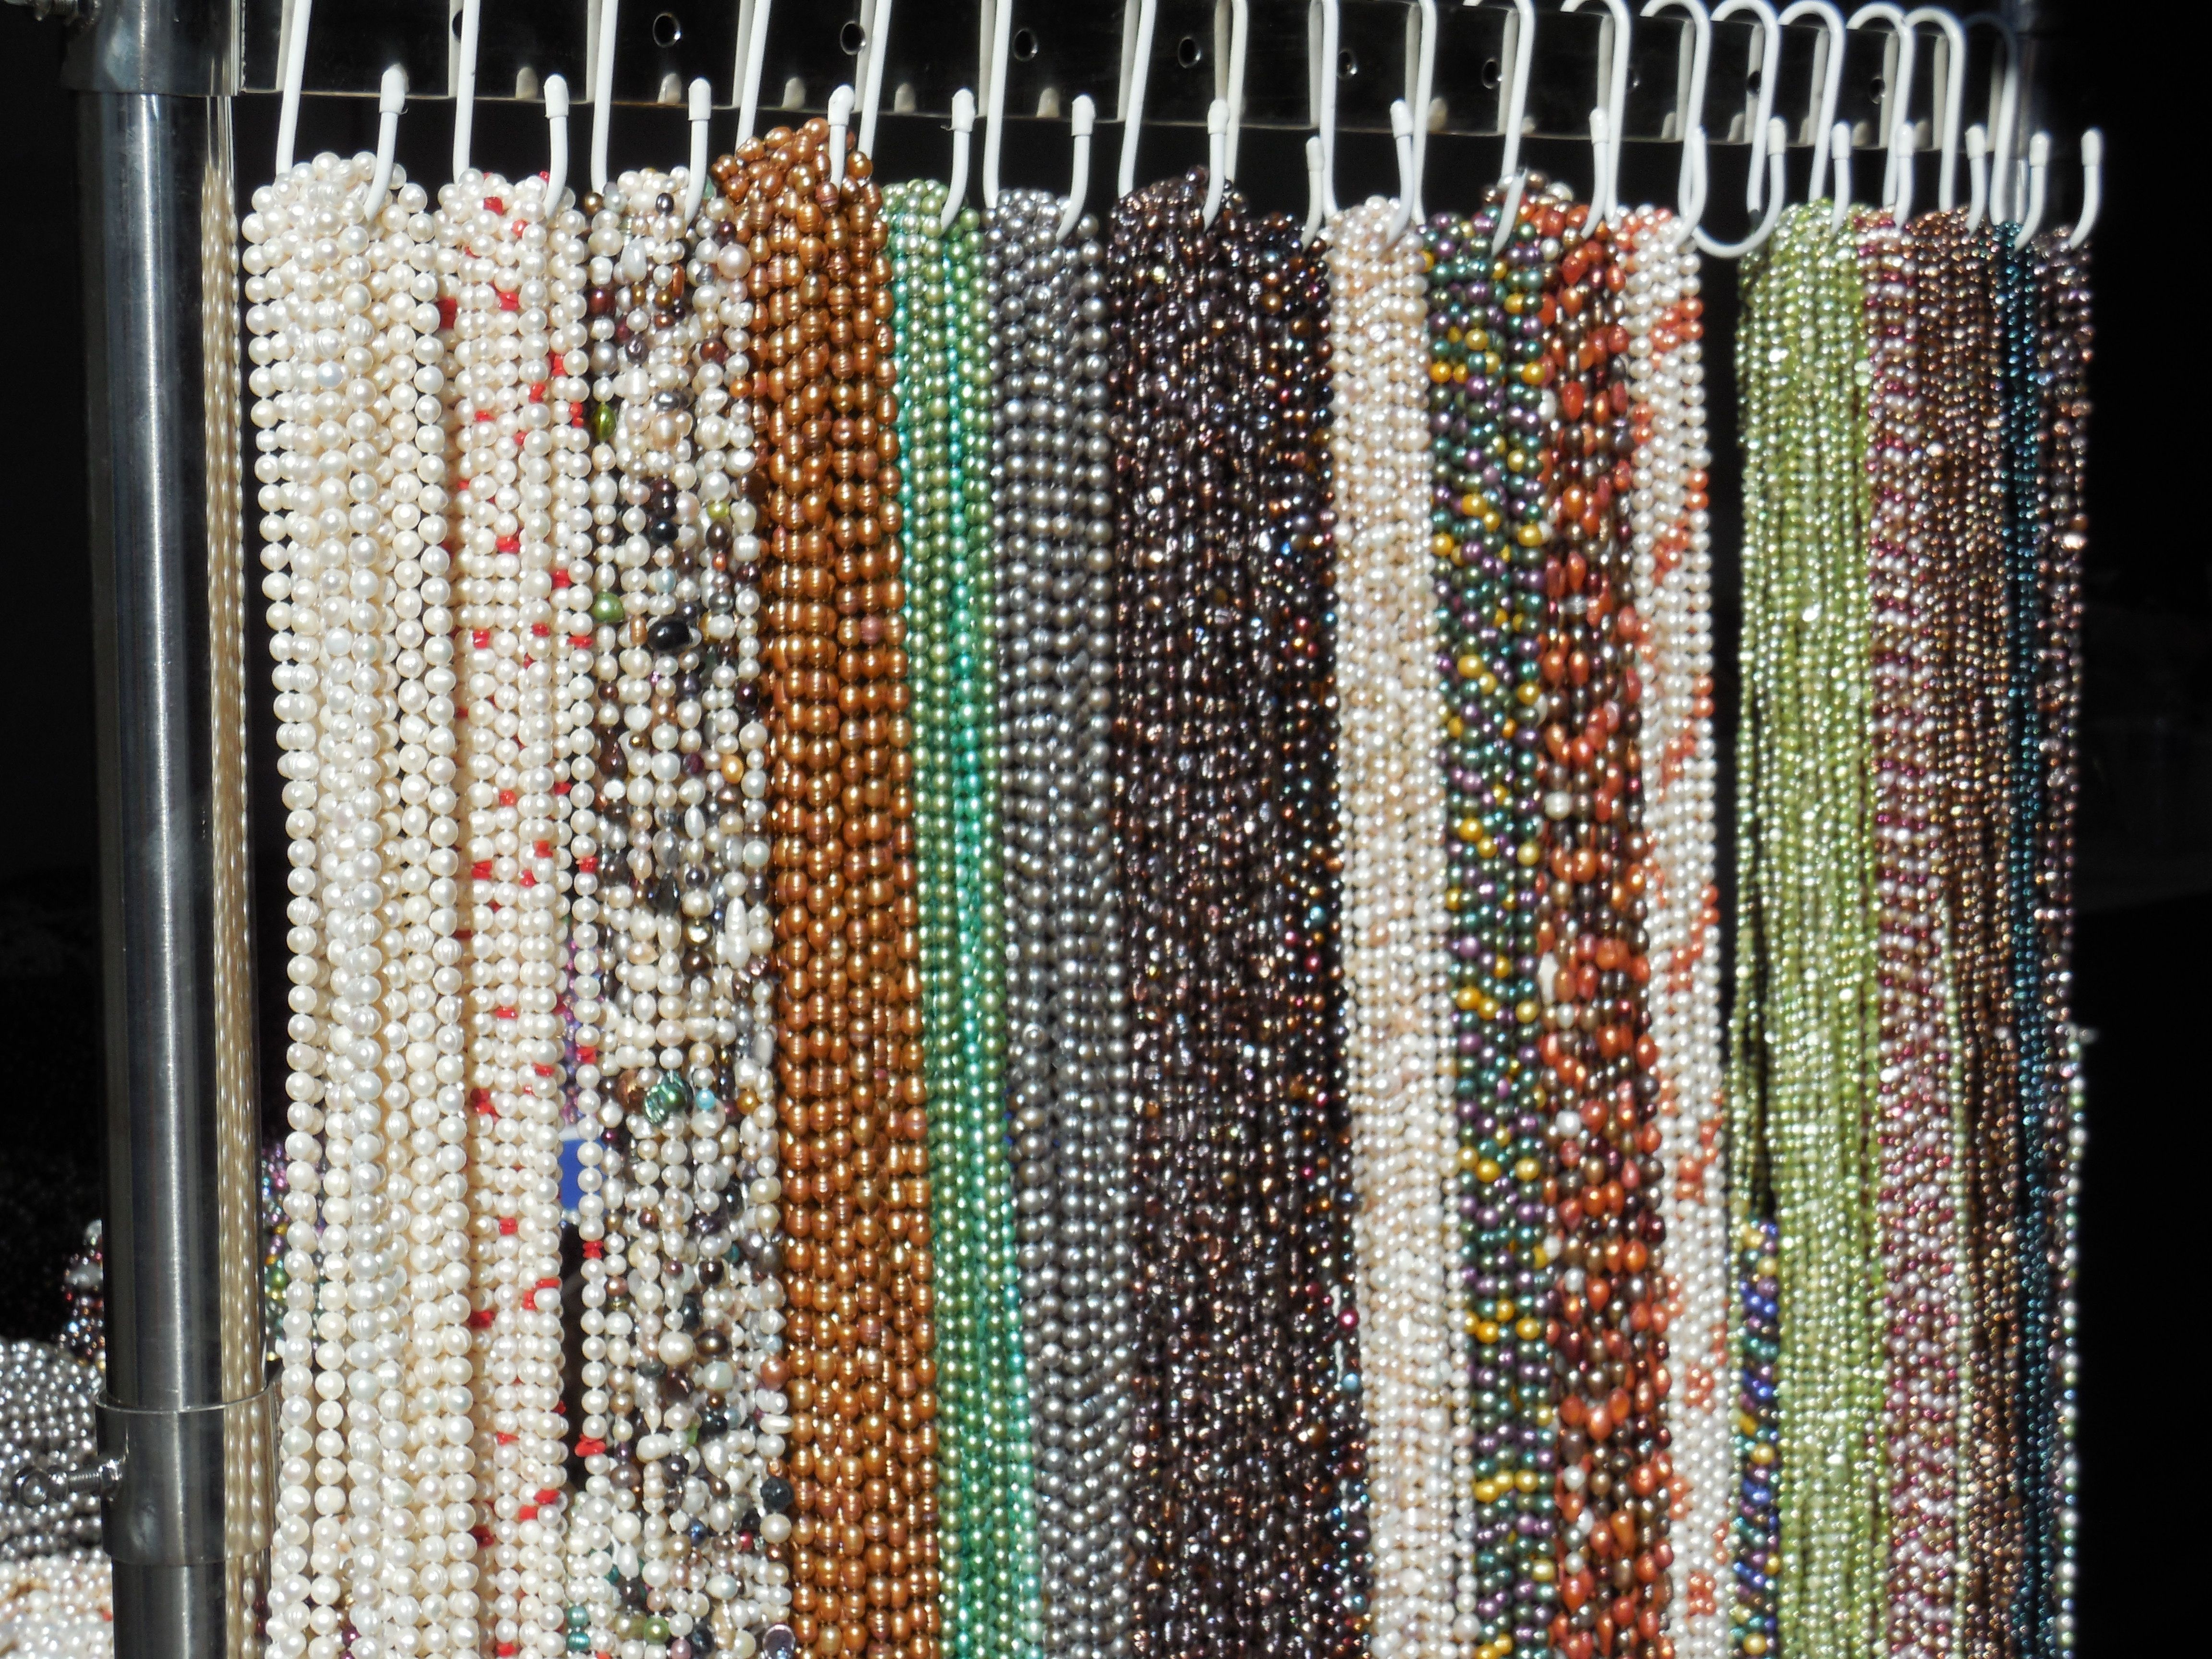 pearl necklaces for sale at tucson gem show tucson gem show gem show gem pearl